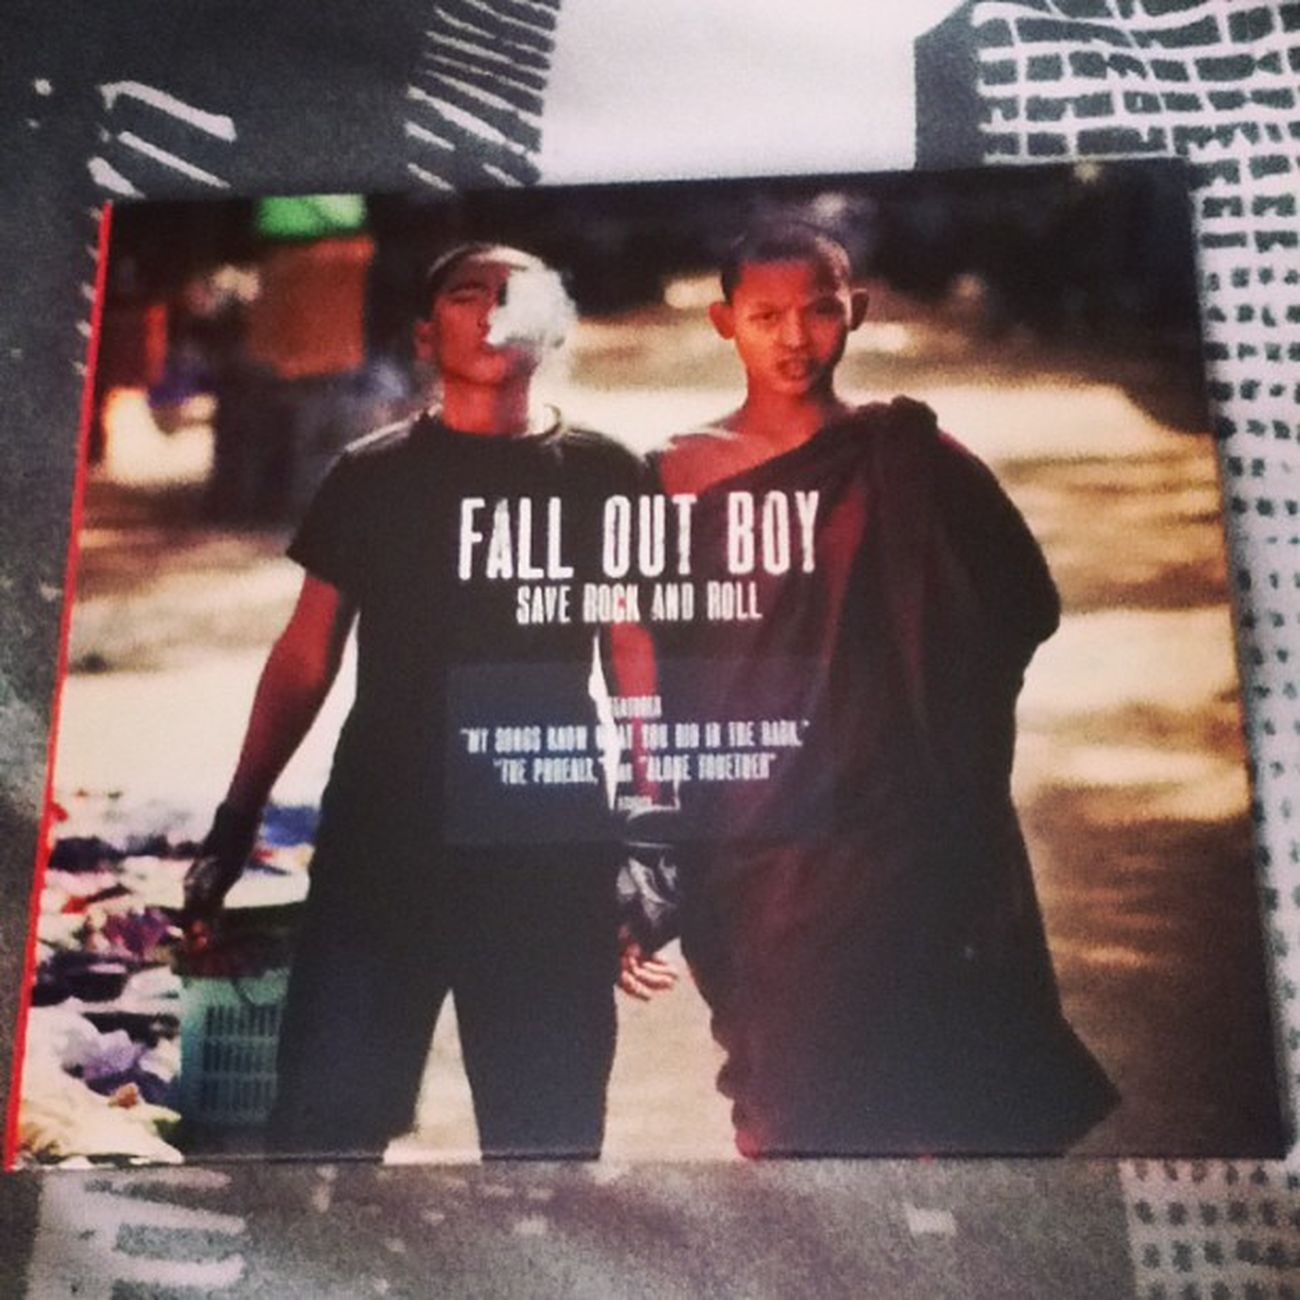 My fall out boys cd came!!:D FOB Falloutboy  Album Falloutboysaverockandroll Punk Monk  Music LoveThem  Likeit Loveit Goood Like Follow Muchlove